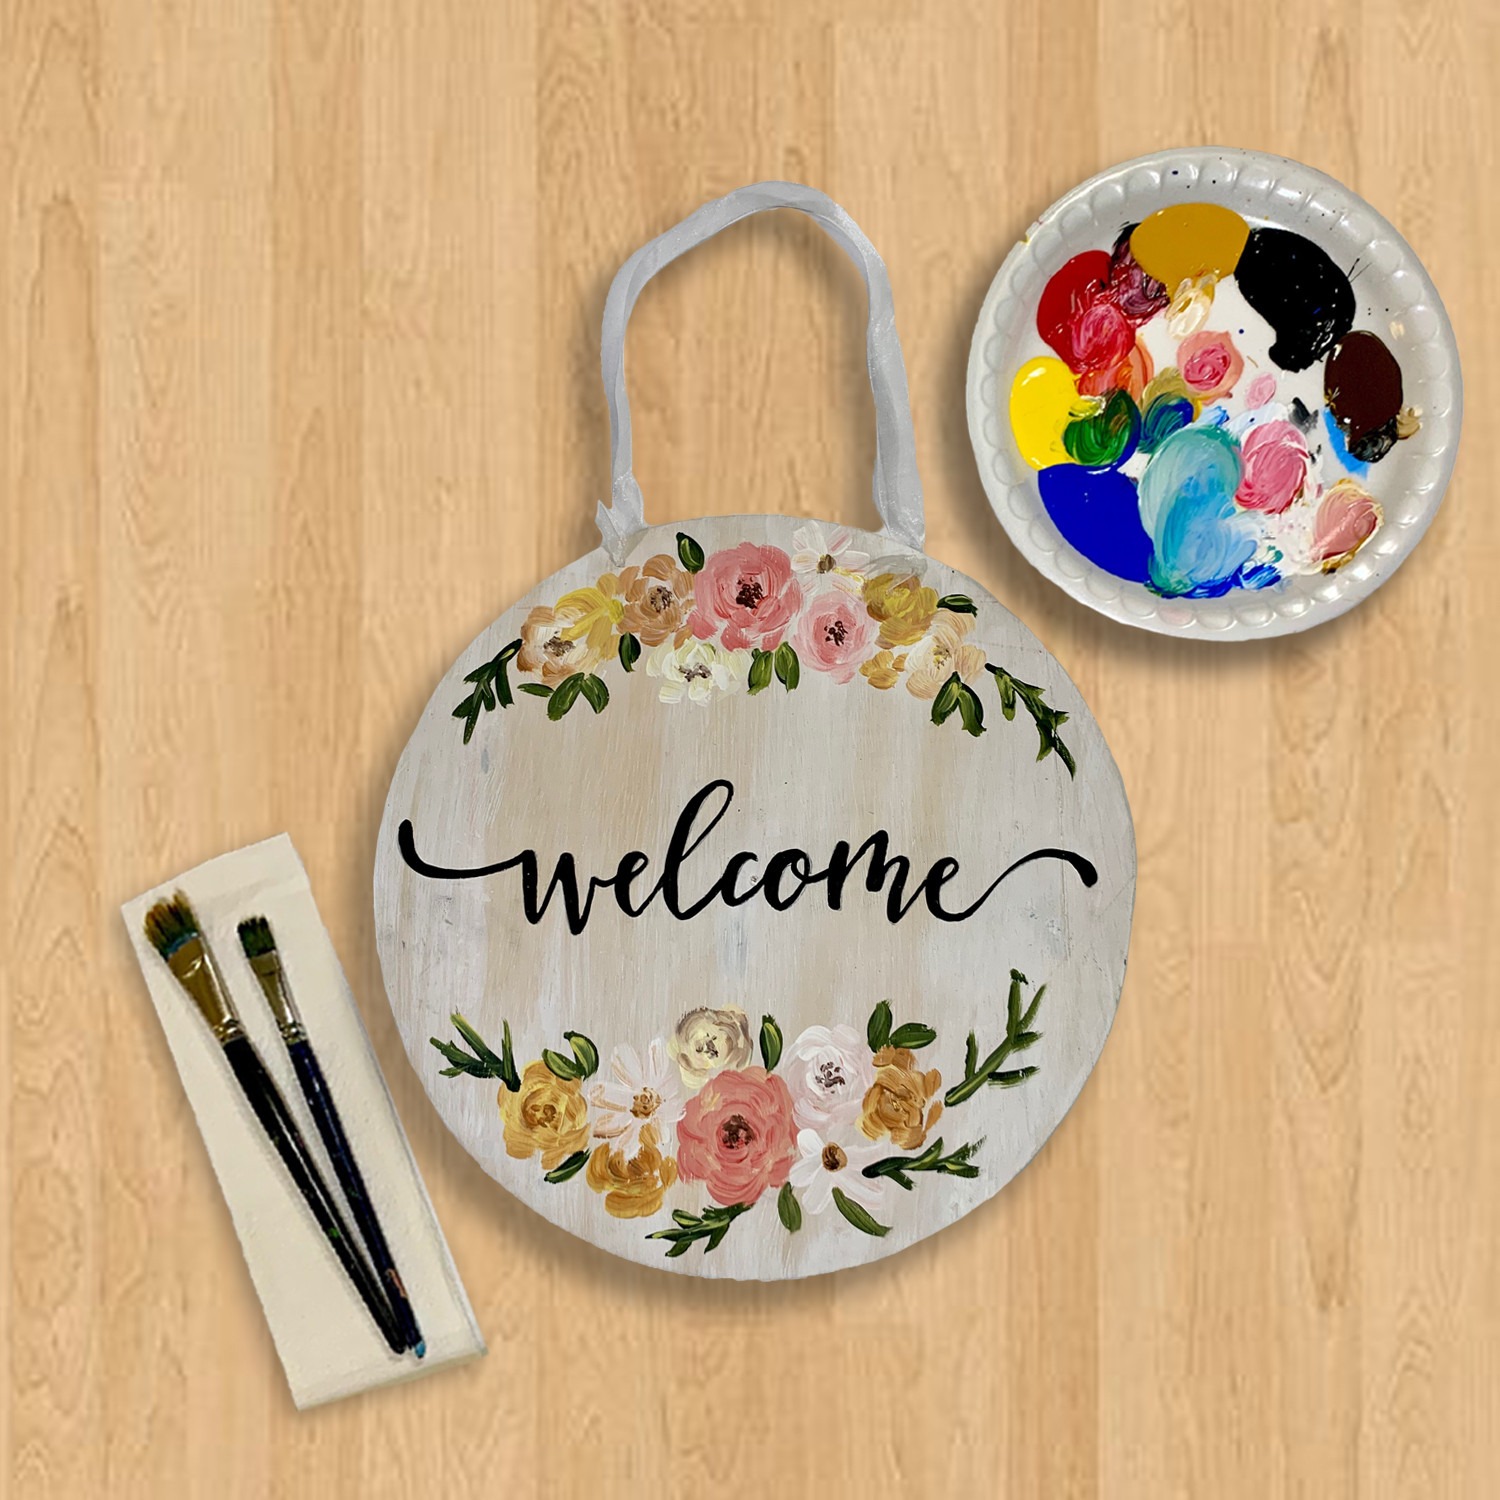 Welcome Wooden Sign Kit